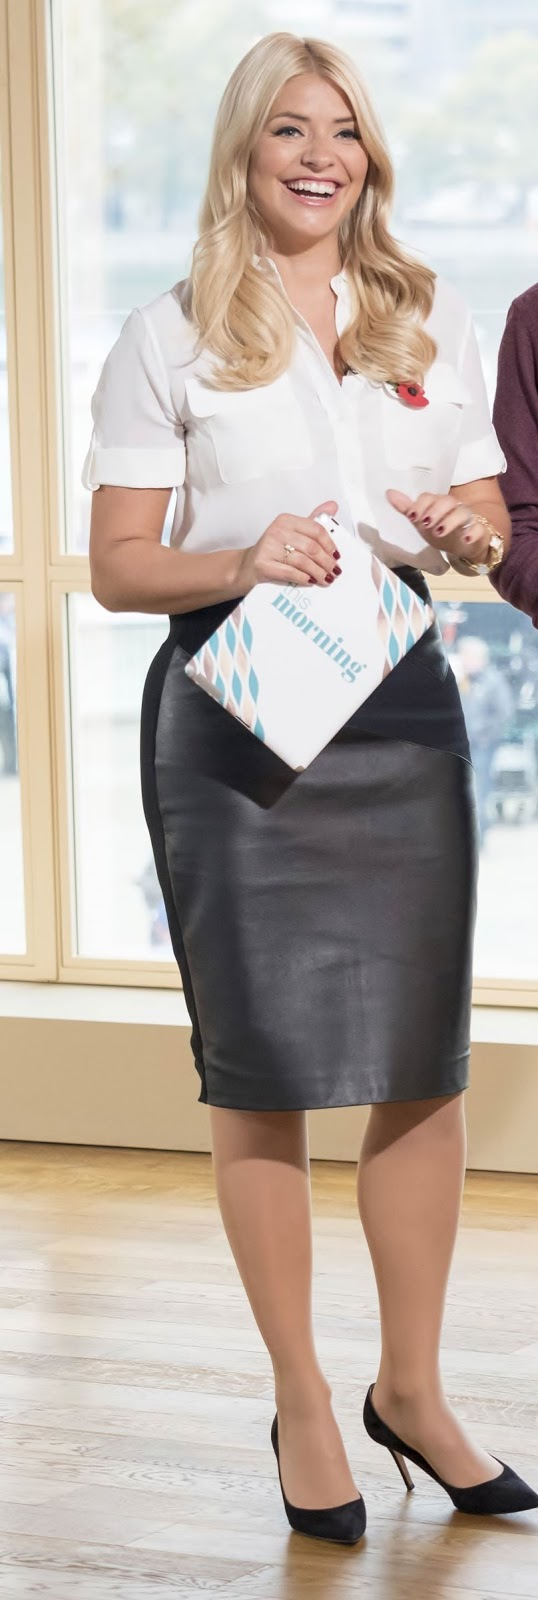 Holly Halston Latex inside lovely ladies in leather: holly willoughby in a leather pencil skirt